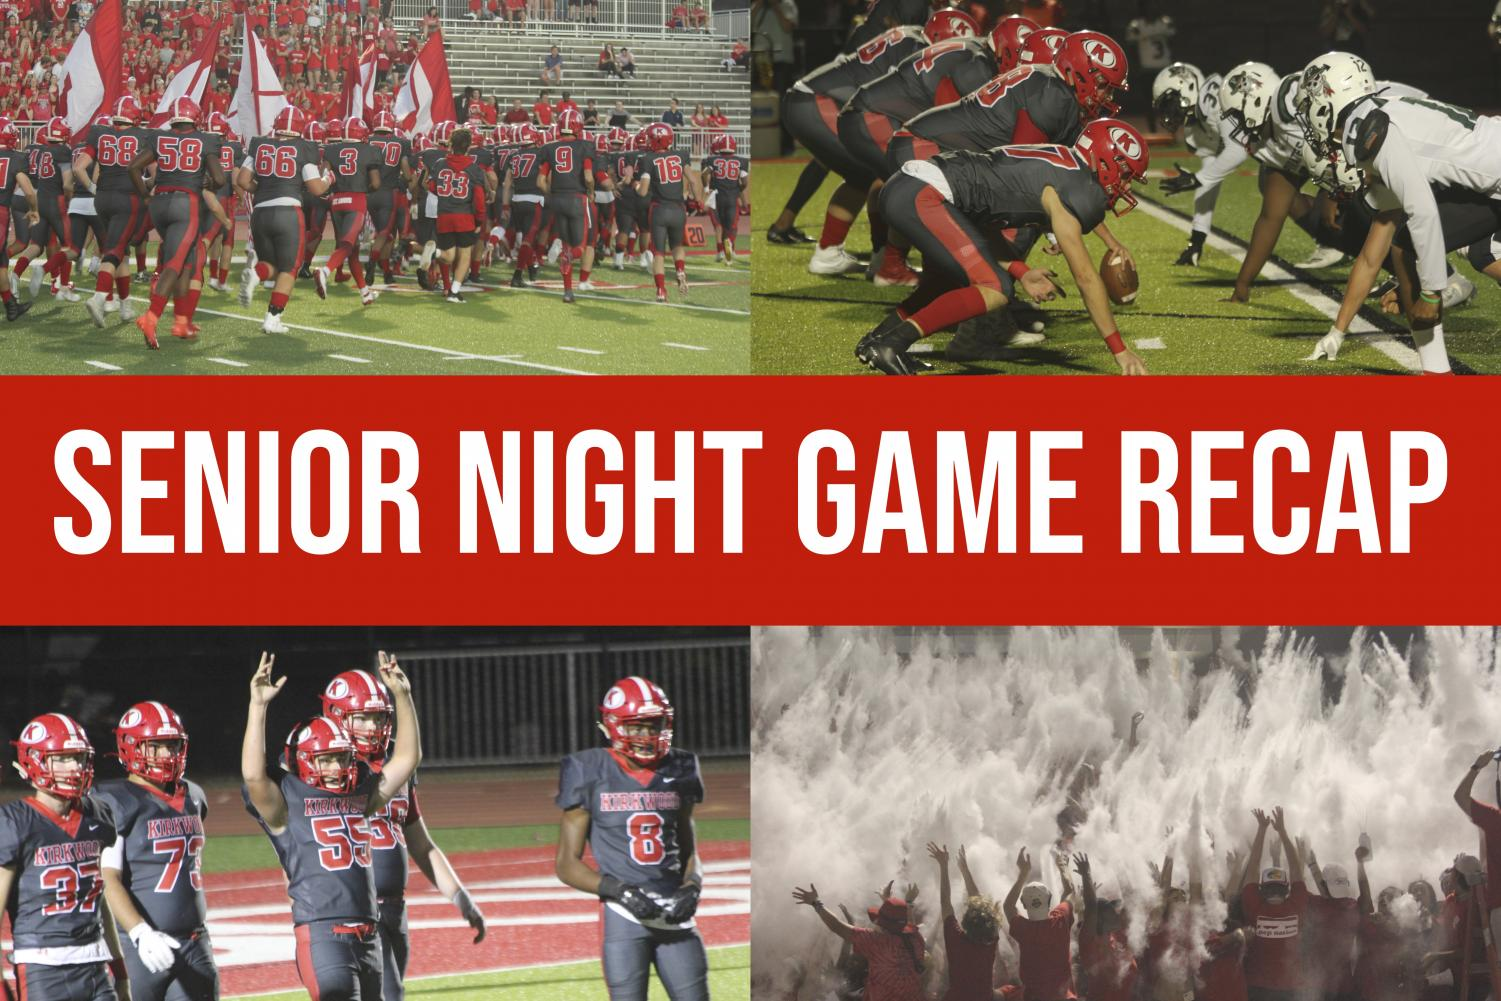 KHS football's Senior Night ended in a 38-17 win for the Pioneers. Photos by Ella Davies; visual by Hayden Davidson.